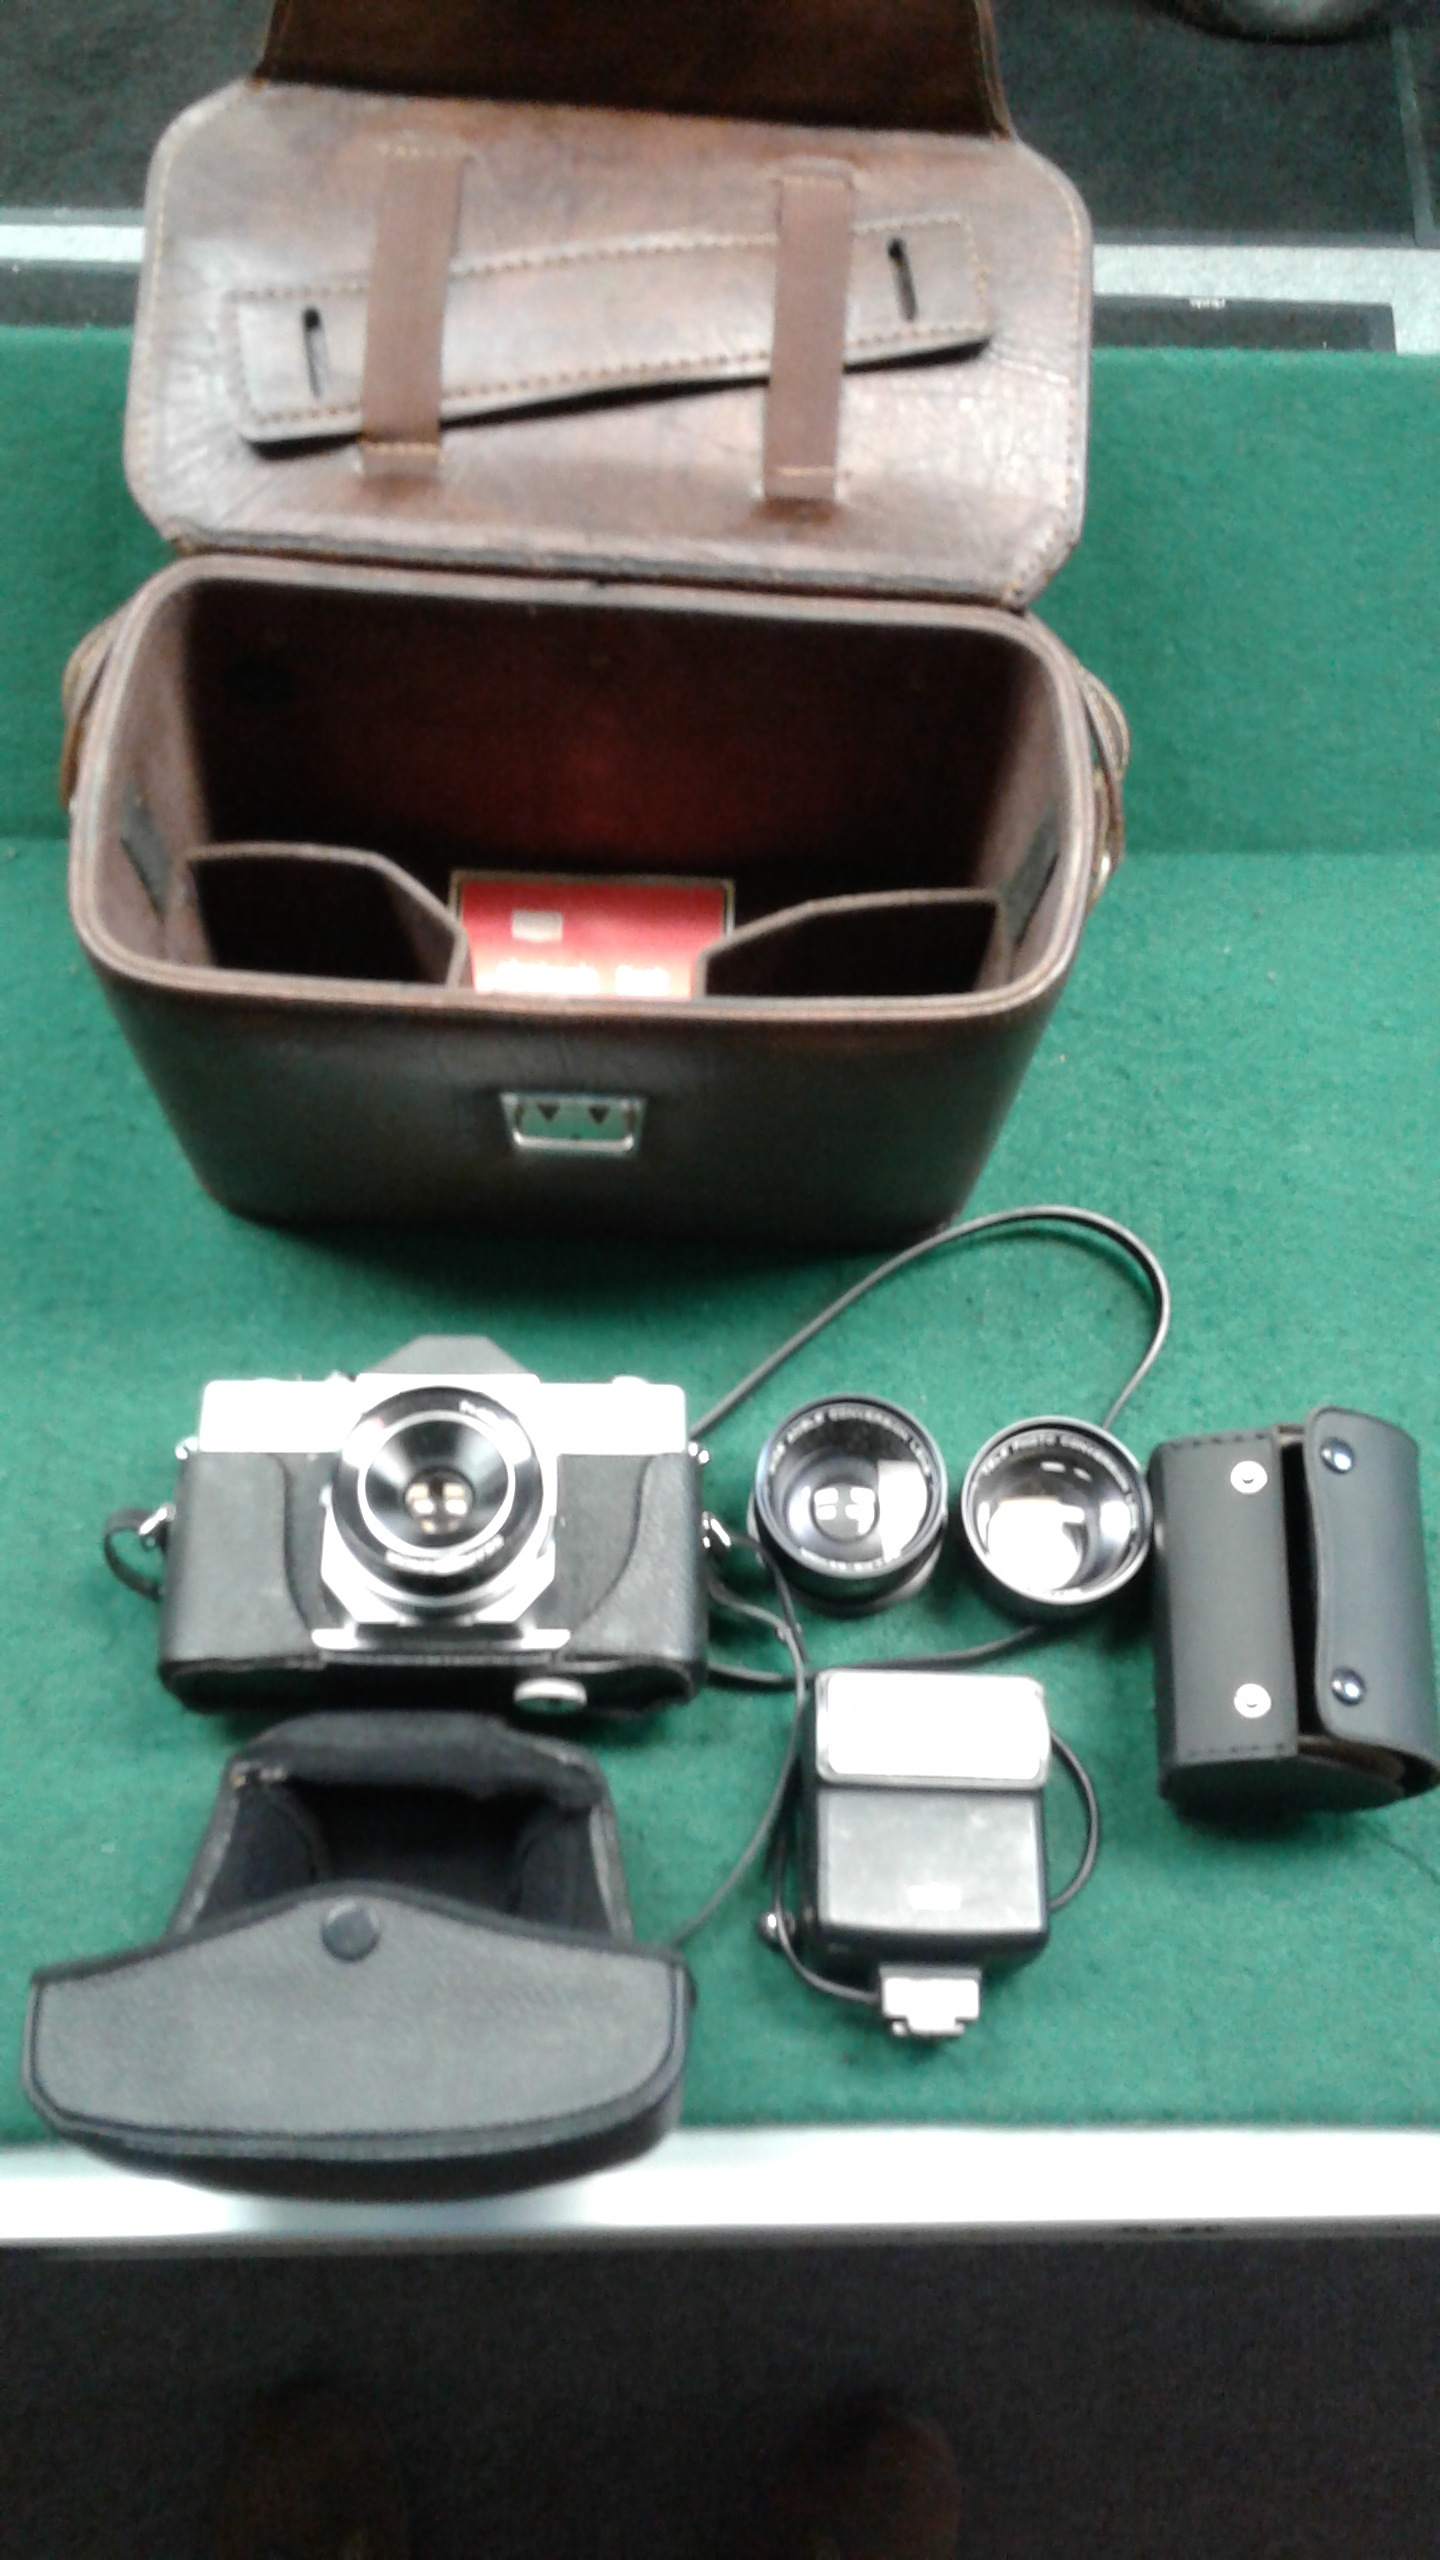 SEARS/SEKOR TLS AUTO VINTAGE 500 CAMERA